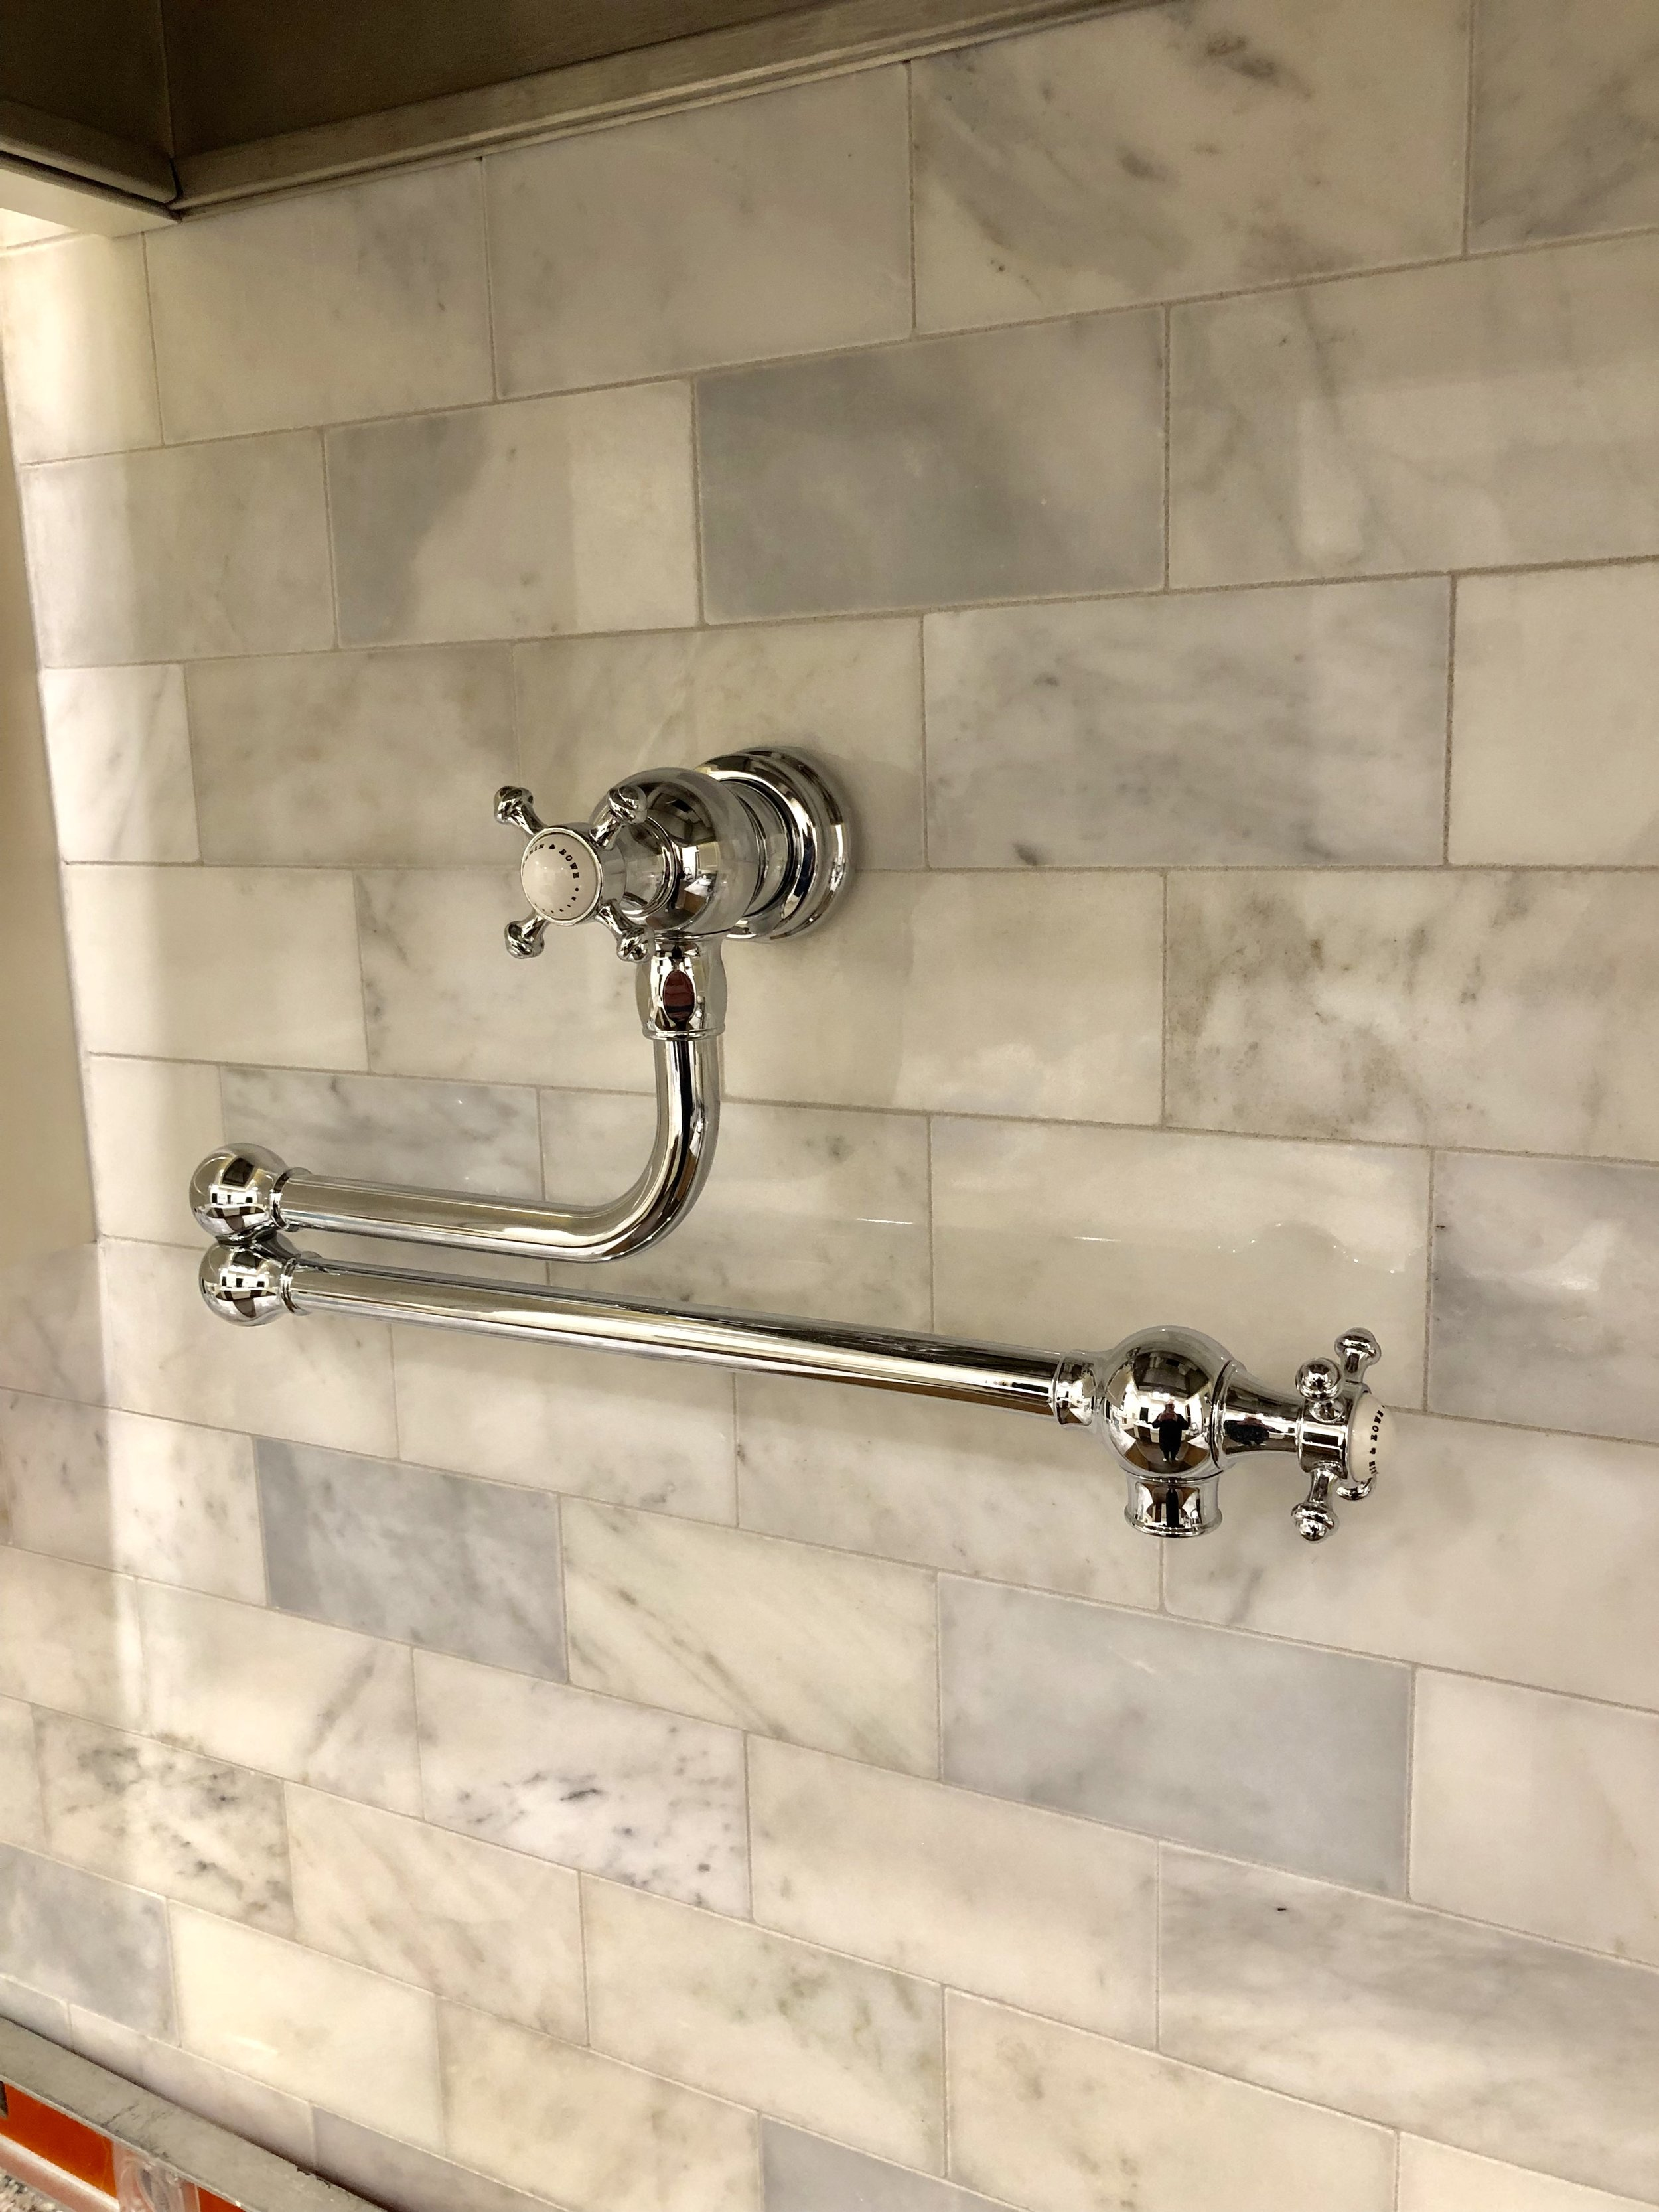 ROHL Perrin & Rowe's magnificent pot filler!